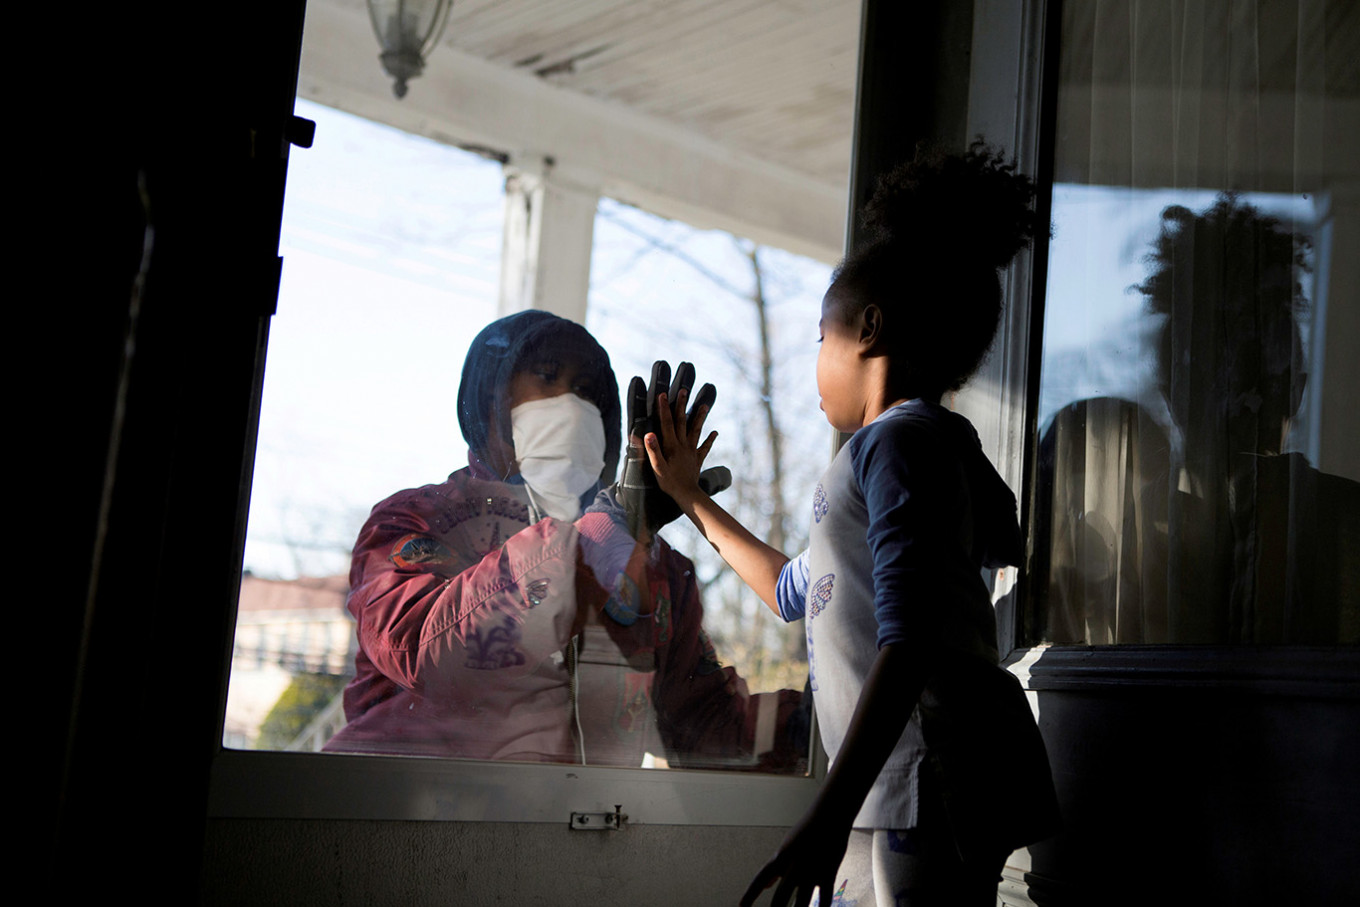 Face Masks May Be New Normal In Post Virus Life As Us Prepares